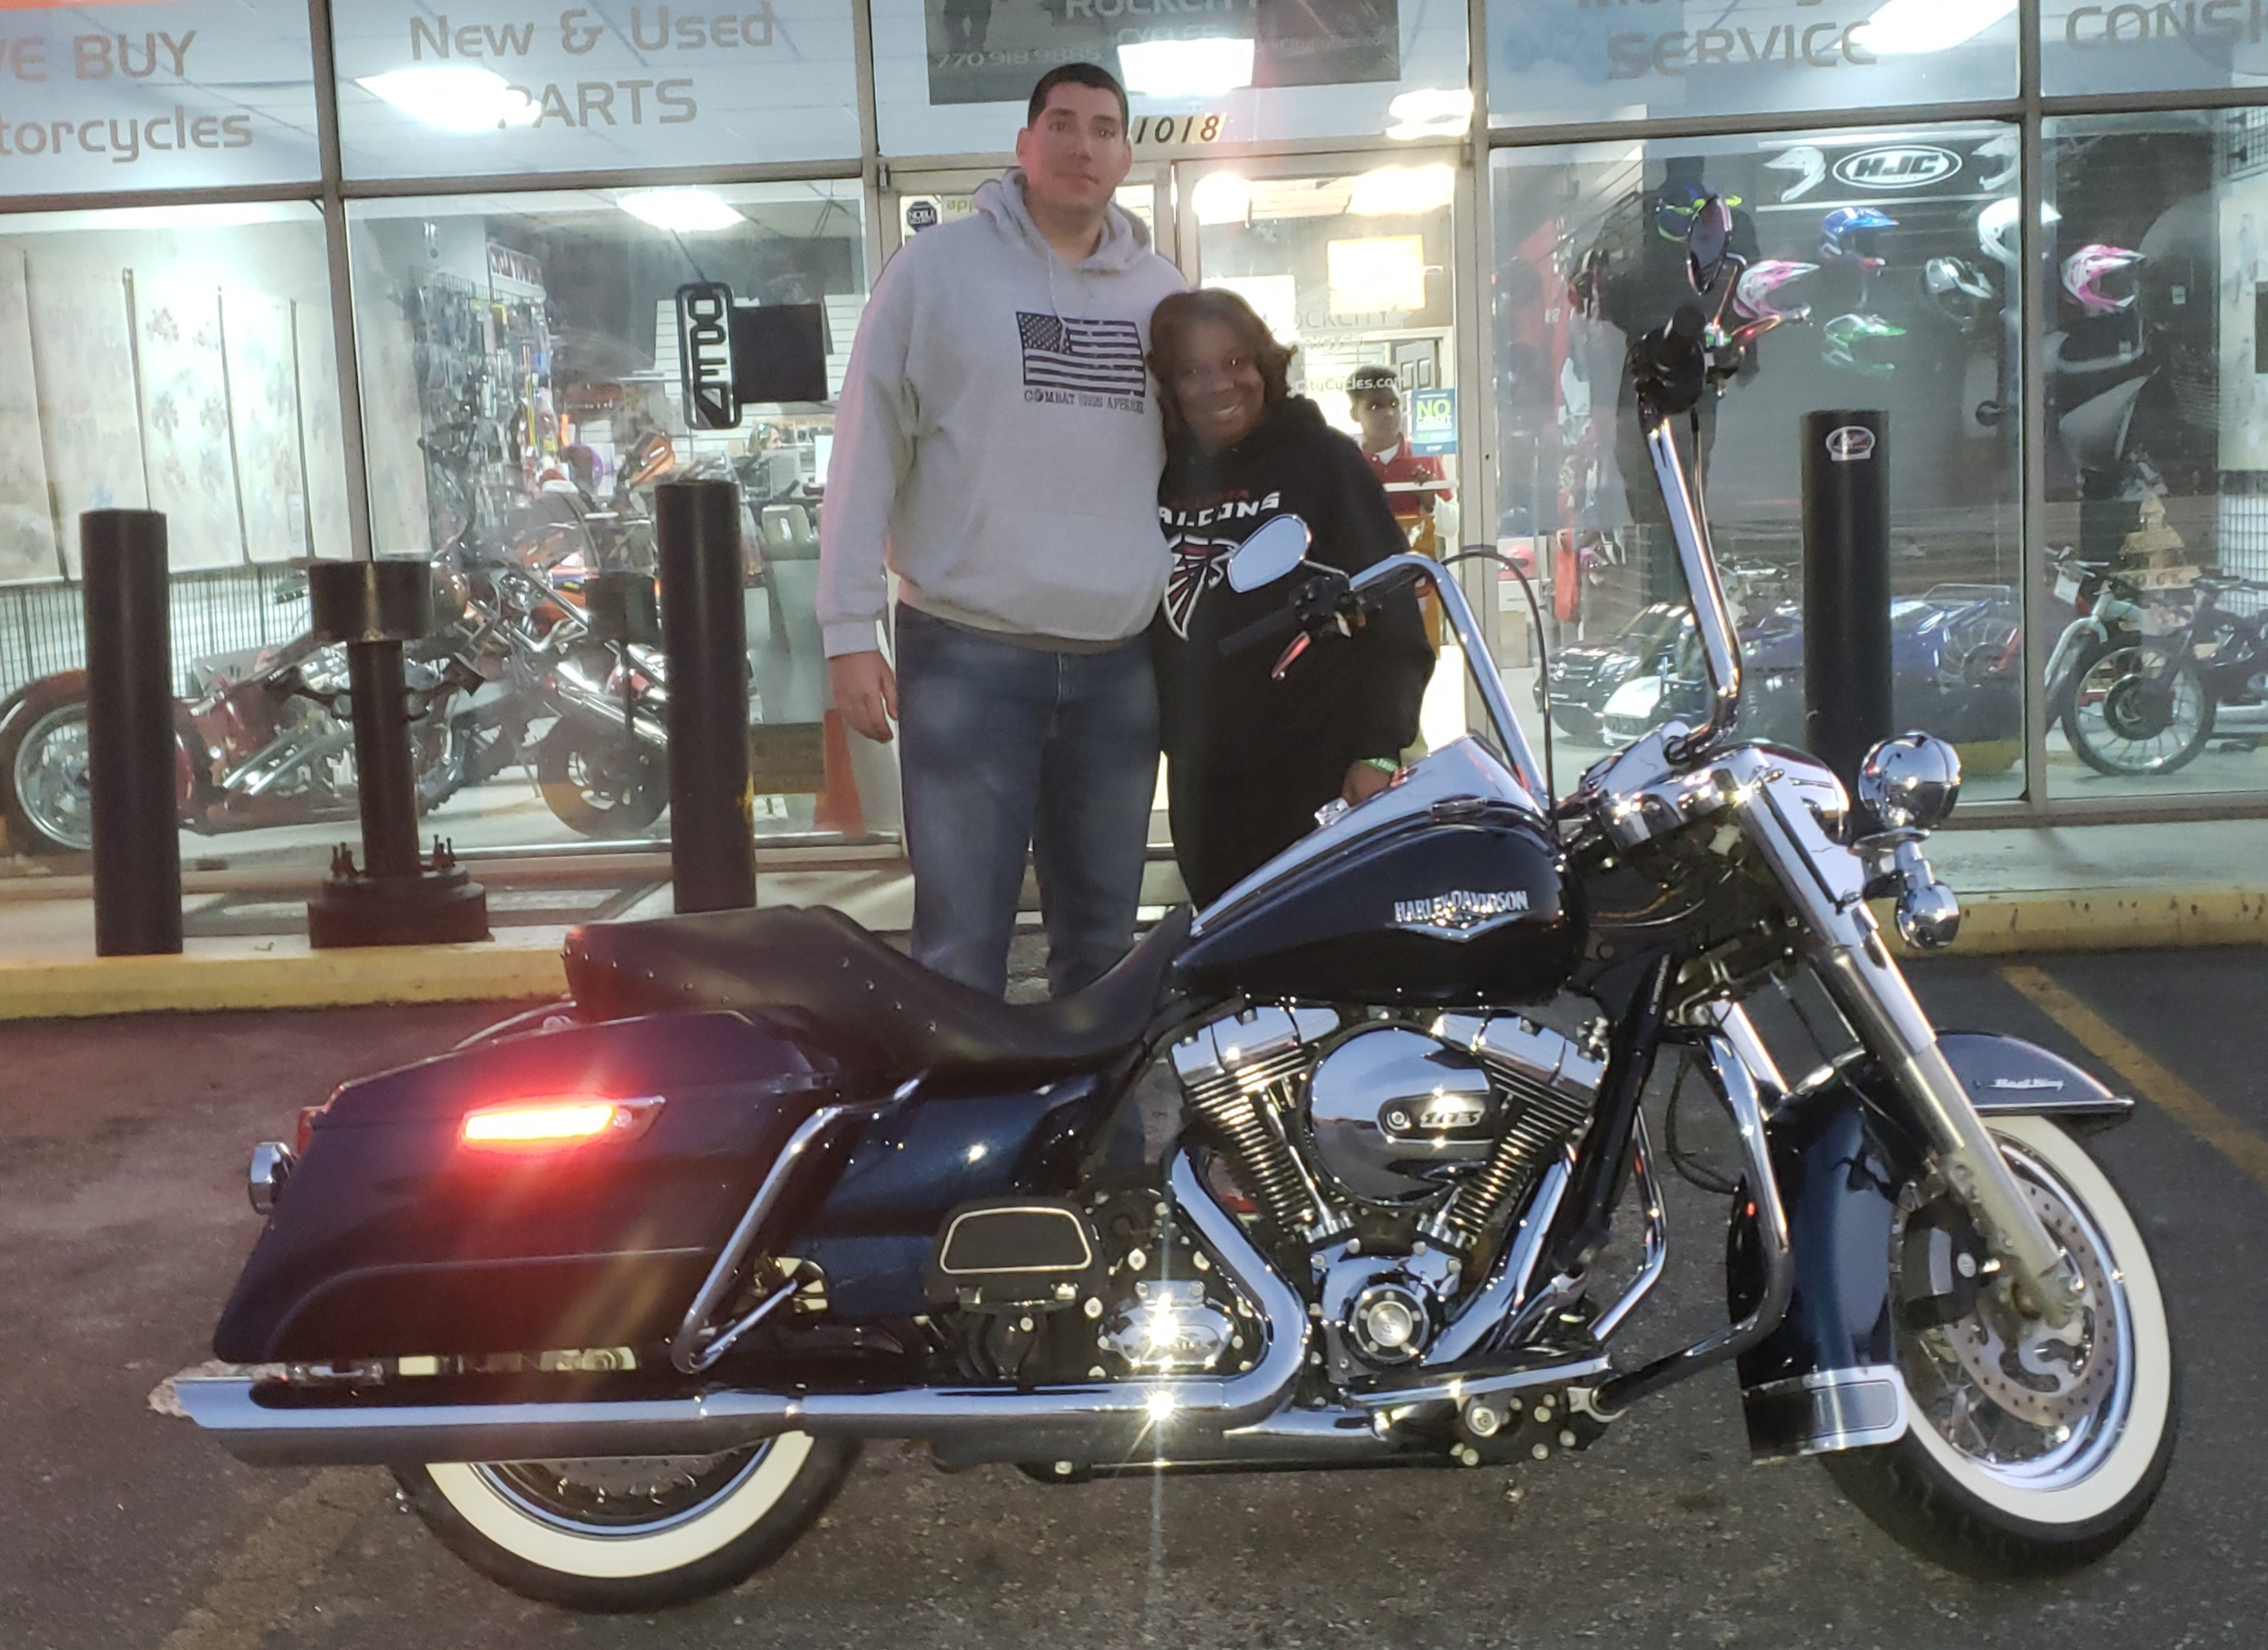 William O. with his 2014 Harley-Davidson Road King